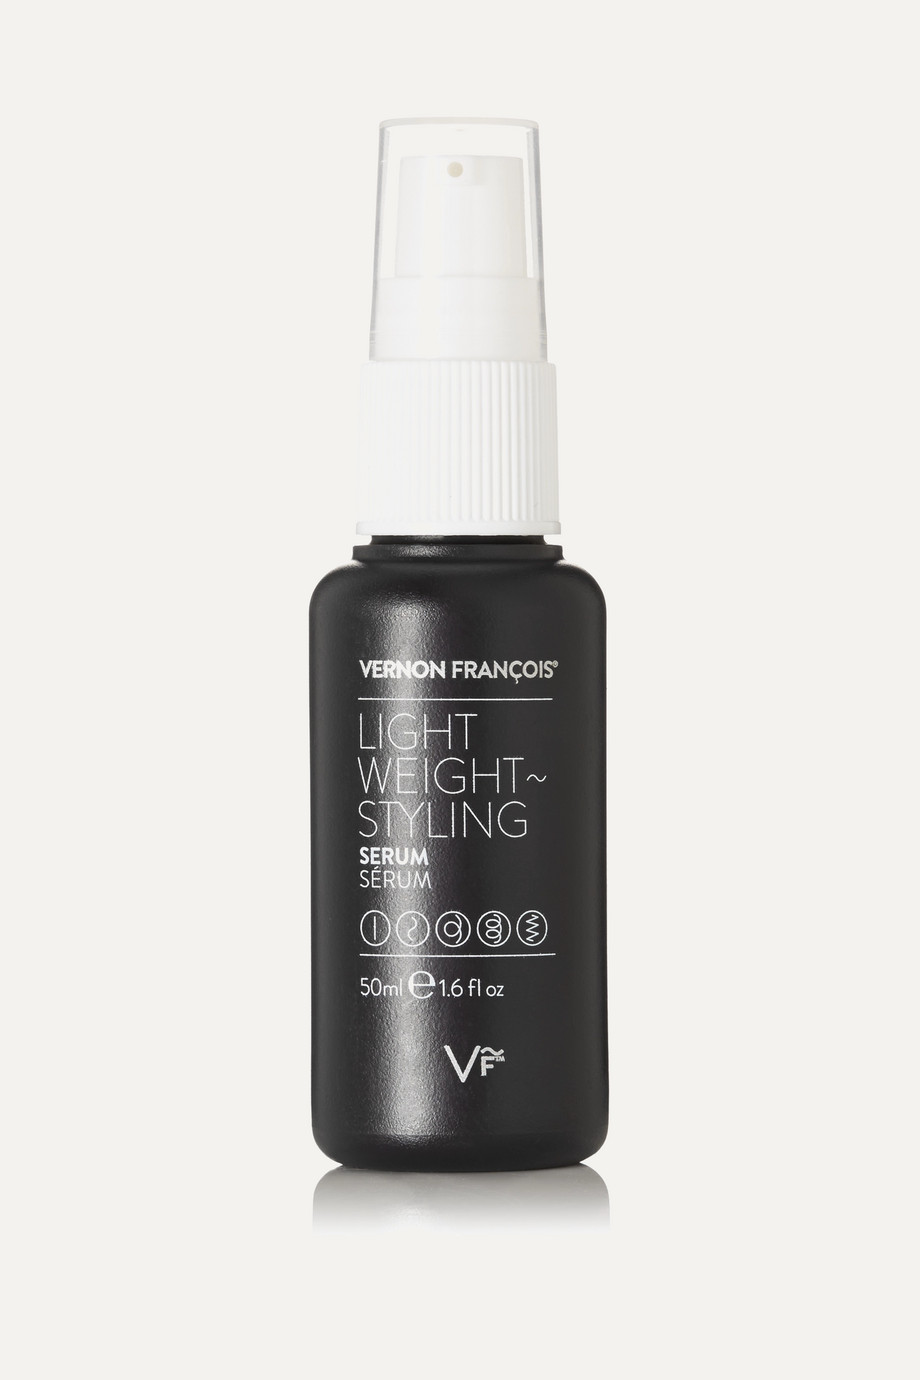 Vernon François Lightweight Styling Serum, 50ml